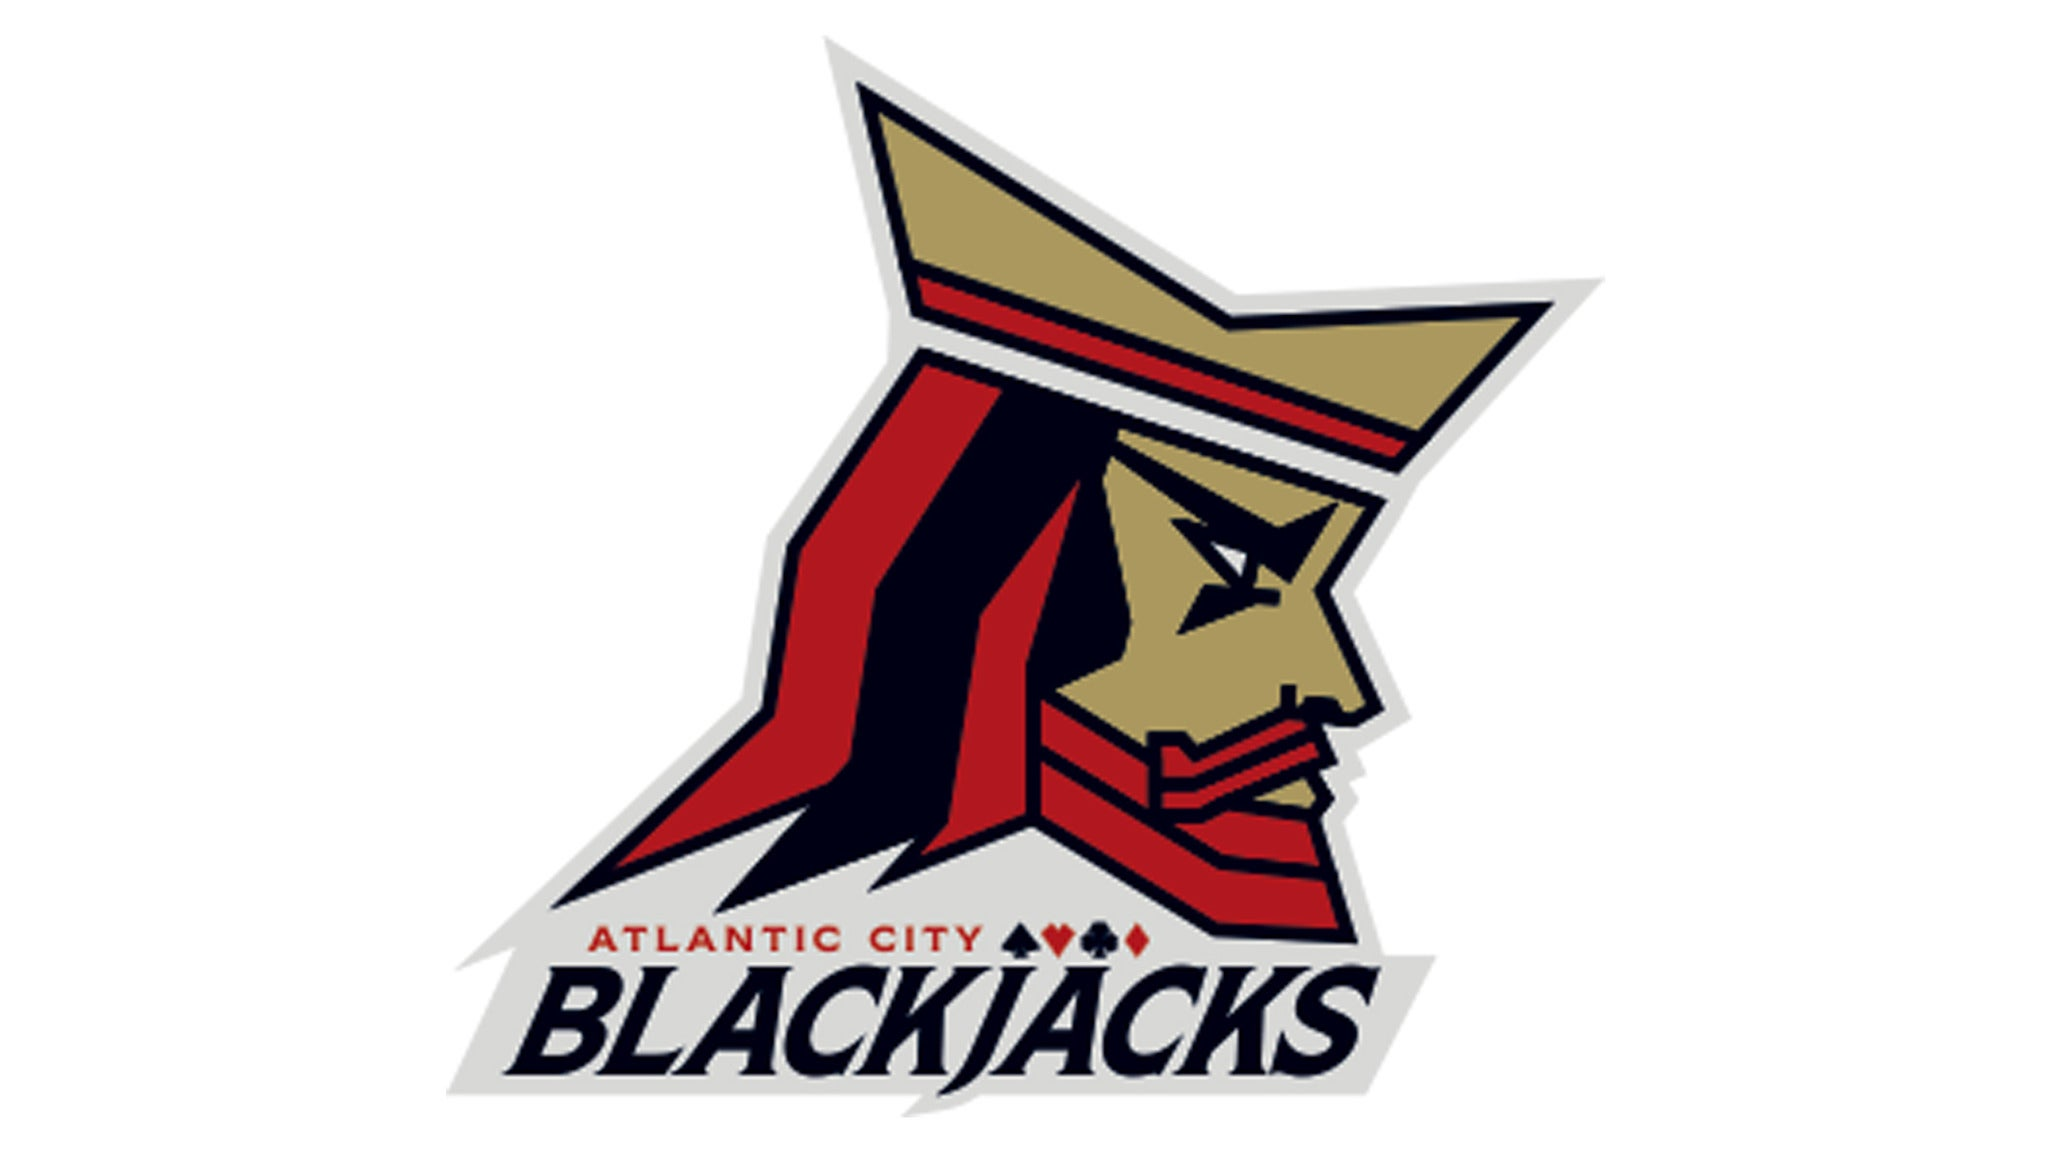 Atlantic City Blackjacks Vs Baltimore Brigade